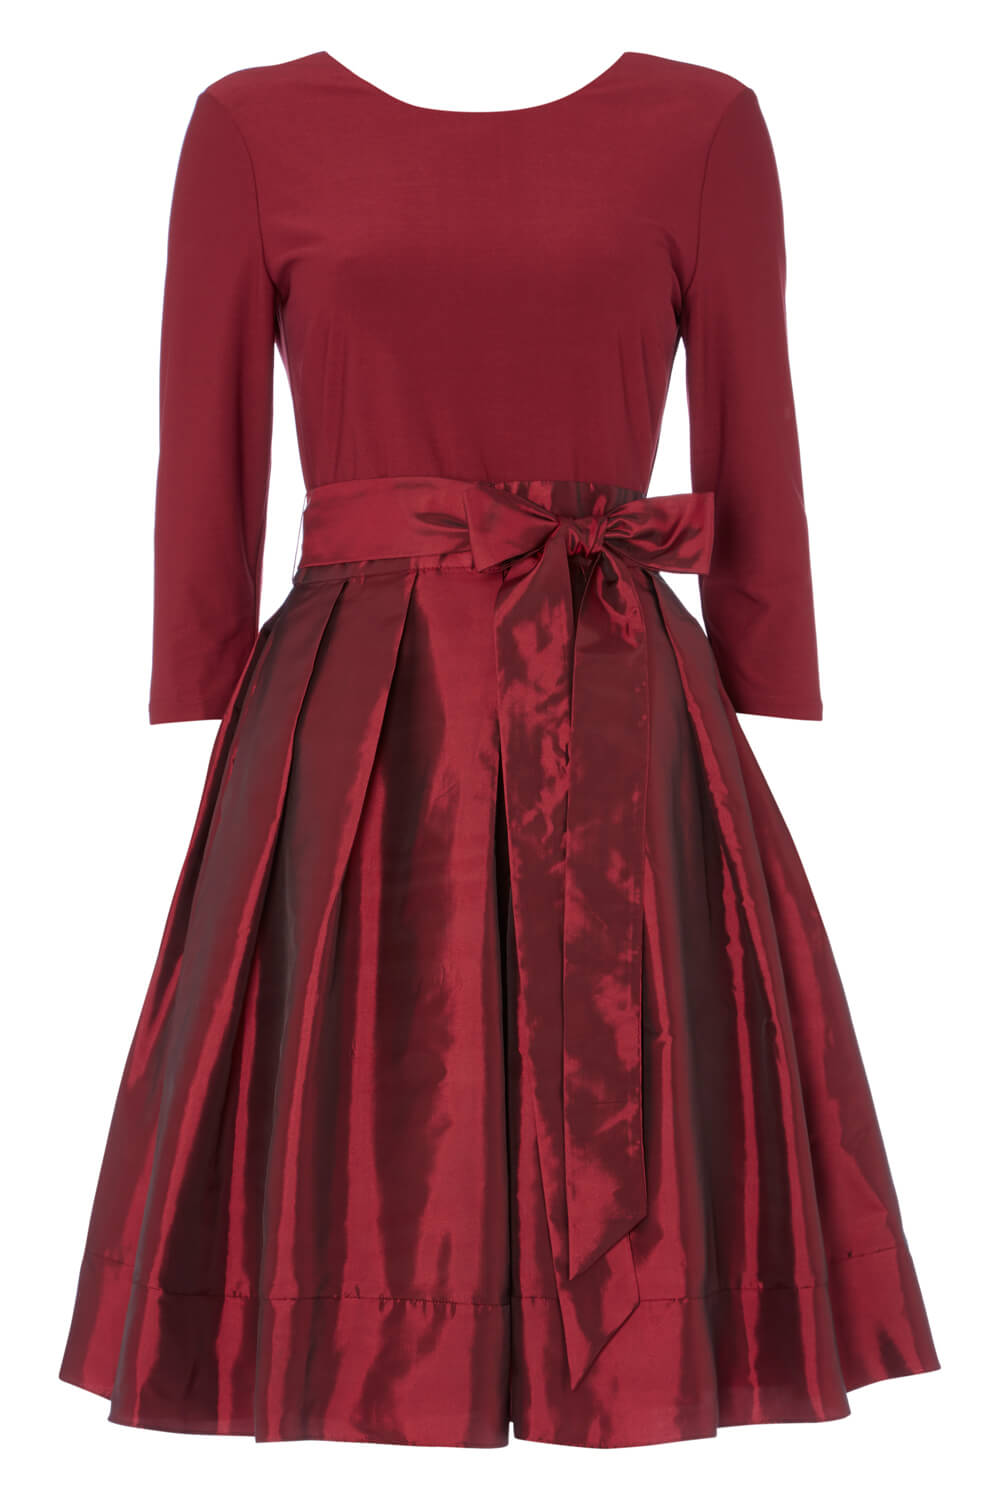 Roman-Originals-Women-039-s-Red-Fit-and-Flare-Dress-Sizes-10-20 thumbnail 12